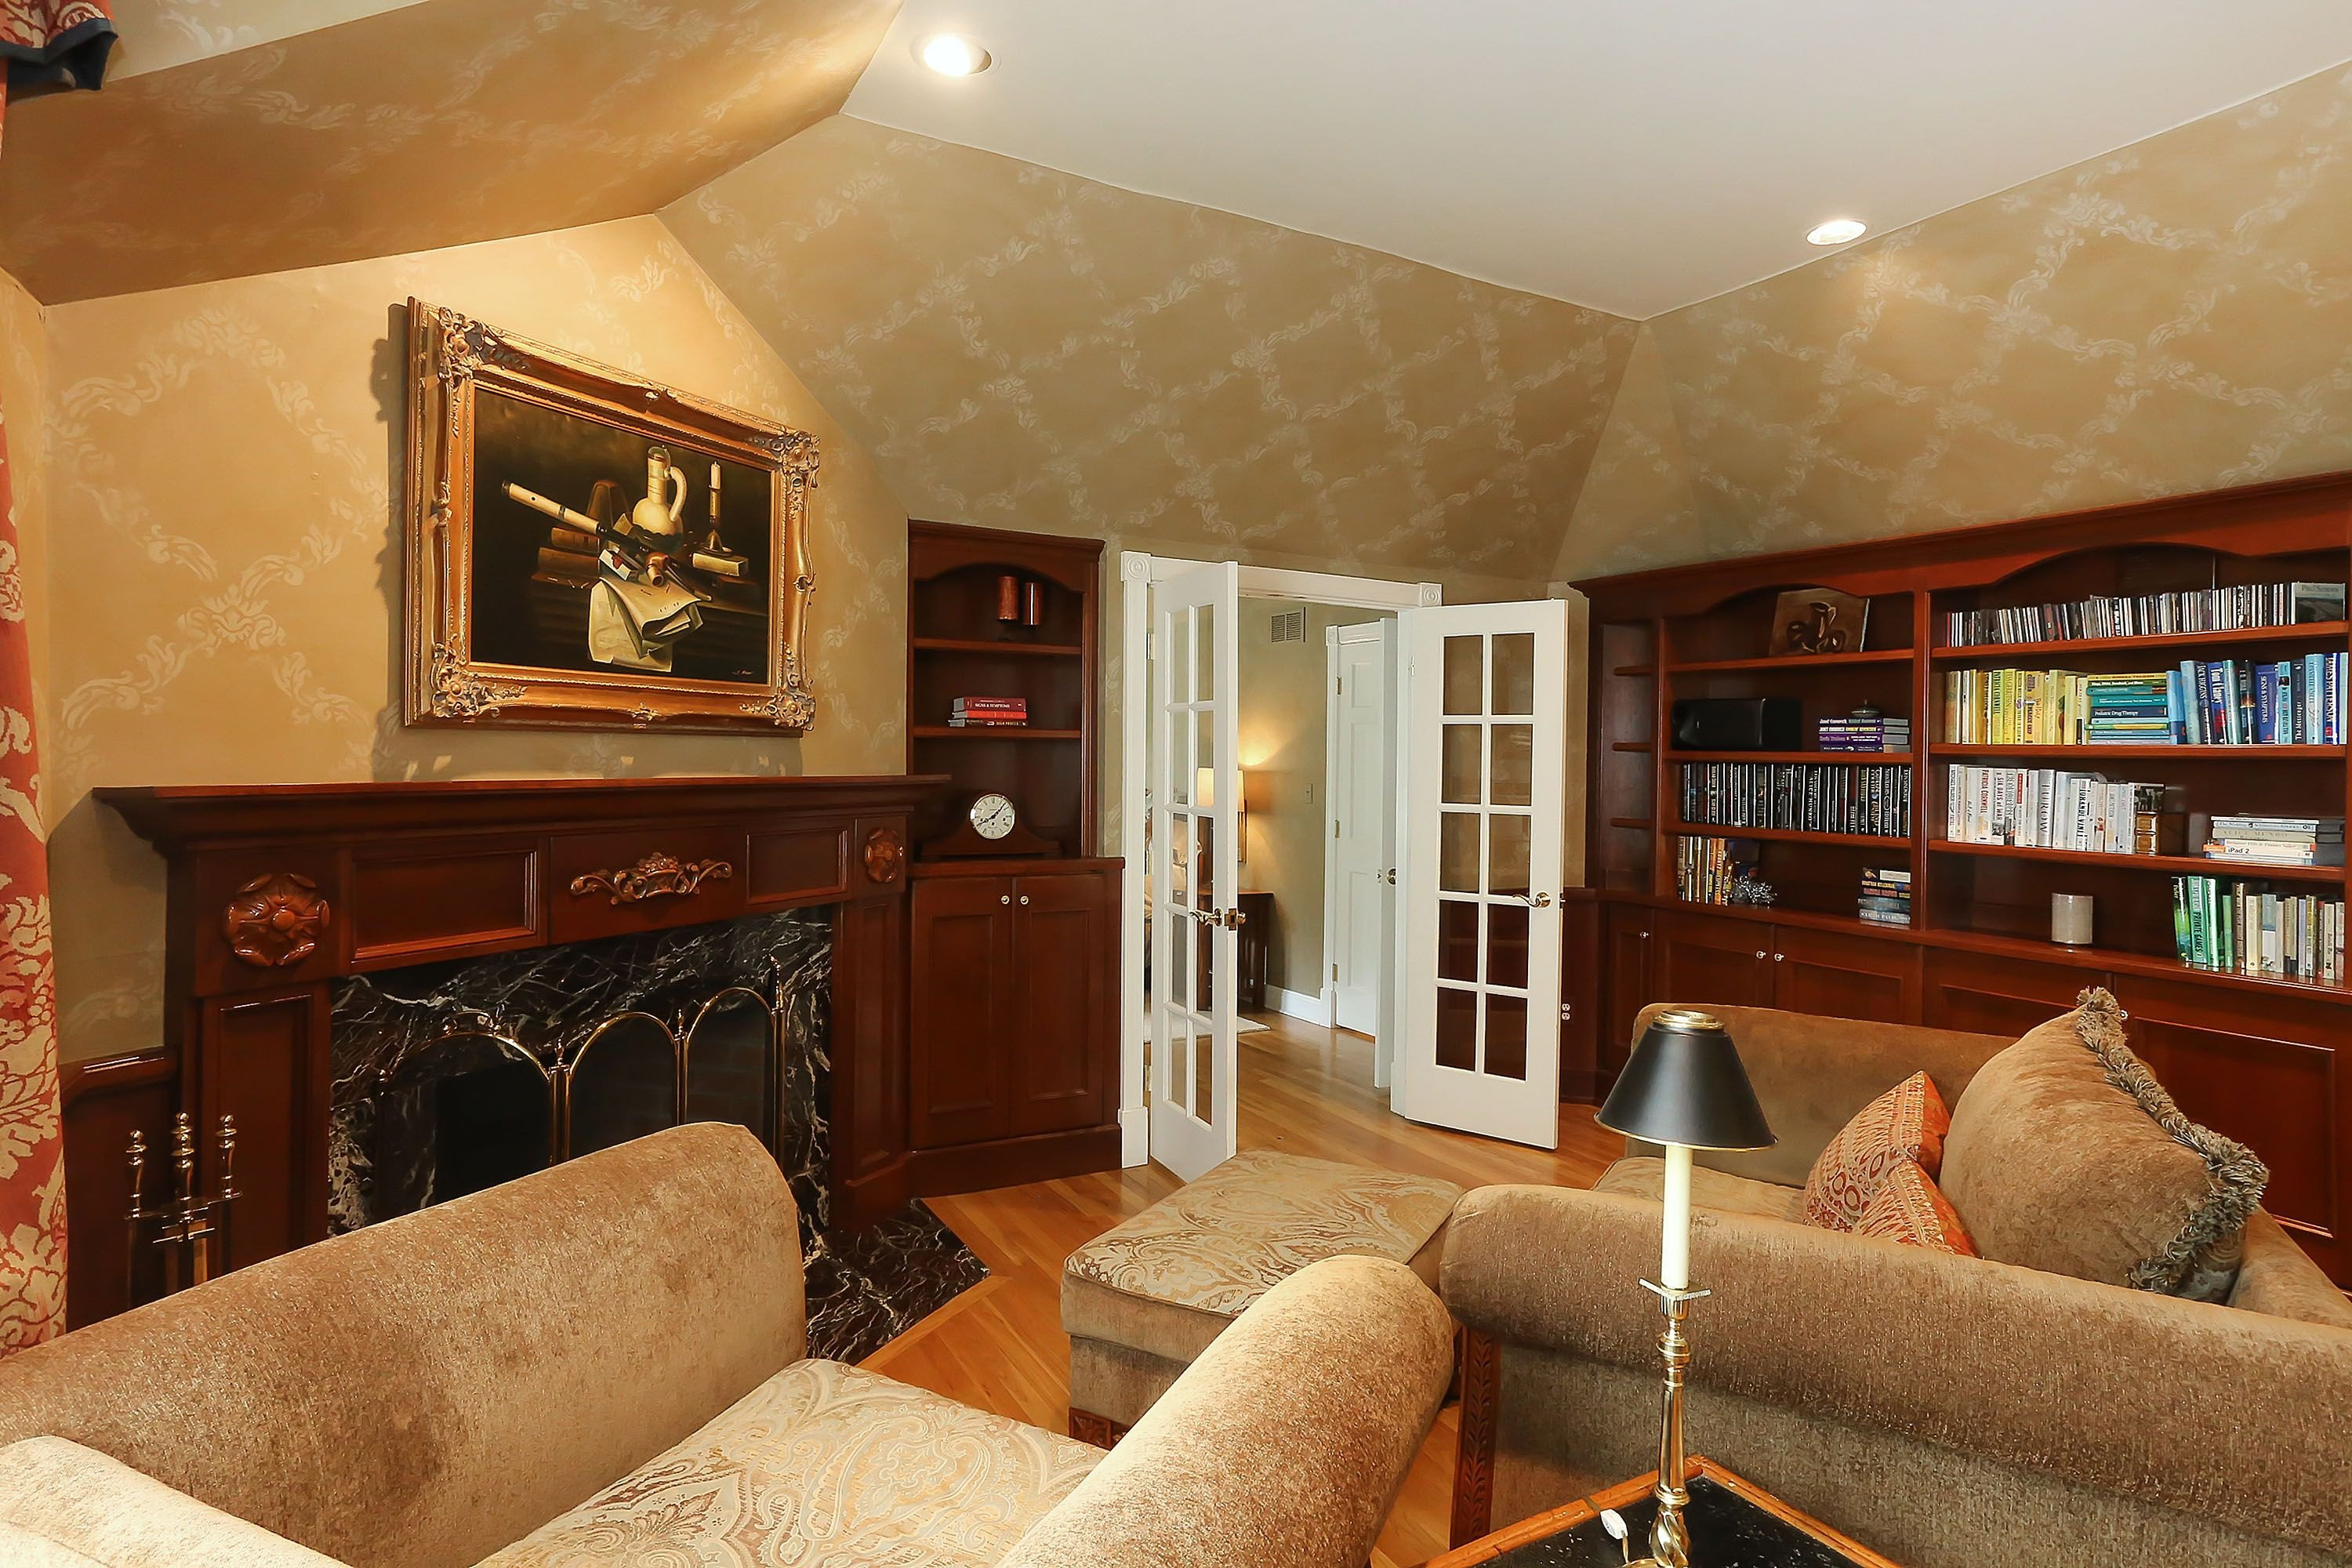 Master Bedroom with Fireplace New How Cool Would It Be to Have A Library & Fireplace Rite Off